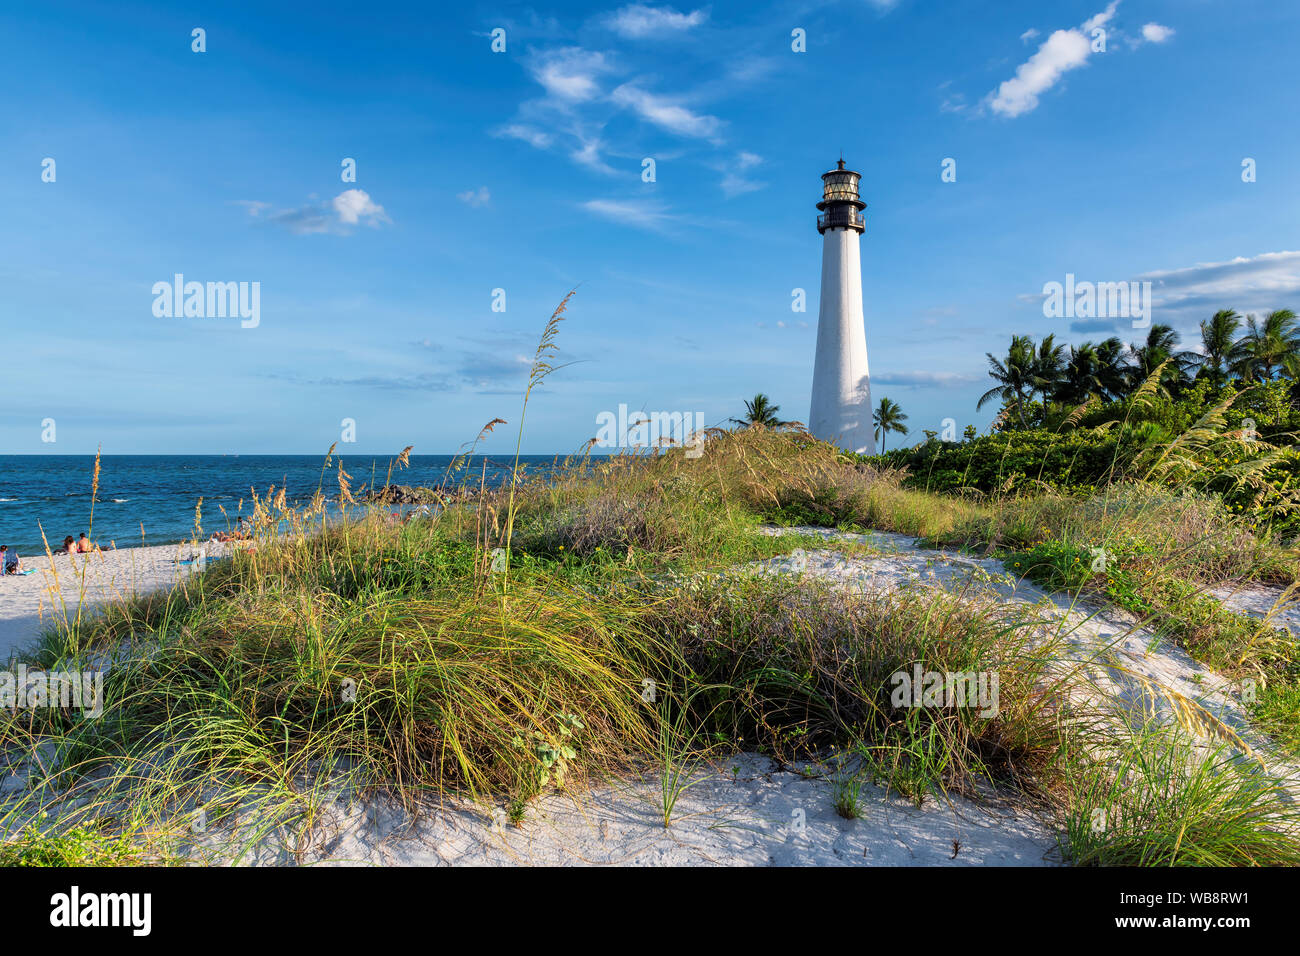 Cape Florida Lighthouse in sand dunes, Key Biscayne, Miami, Florida Stock Photo